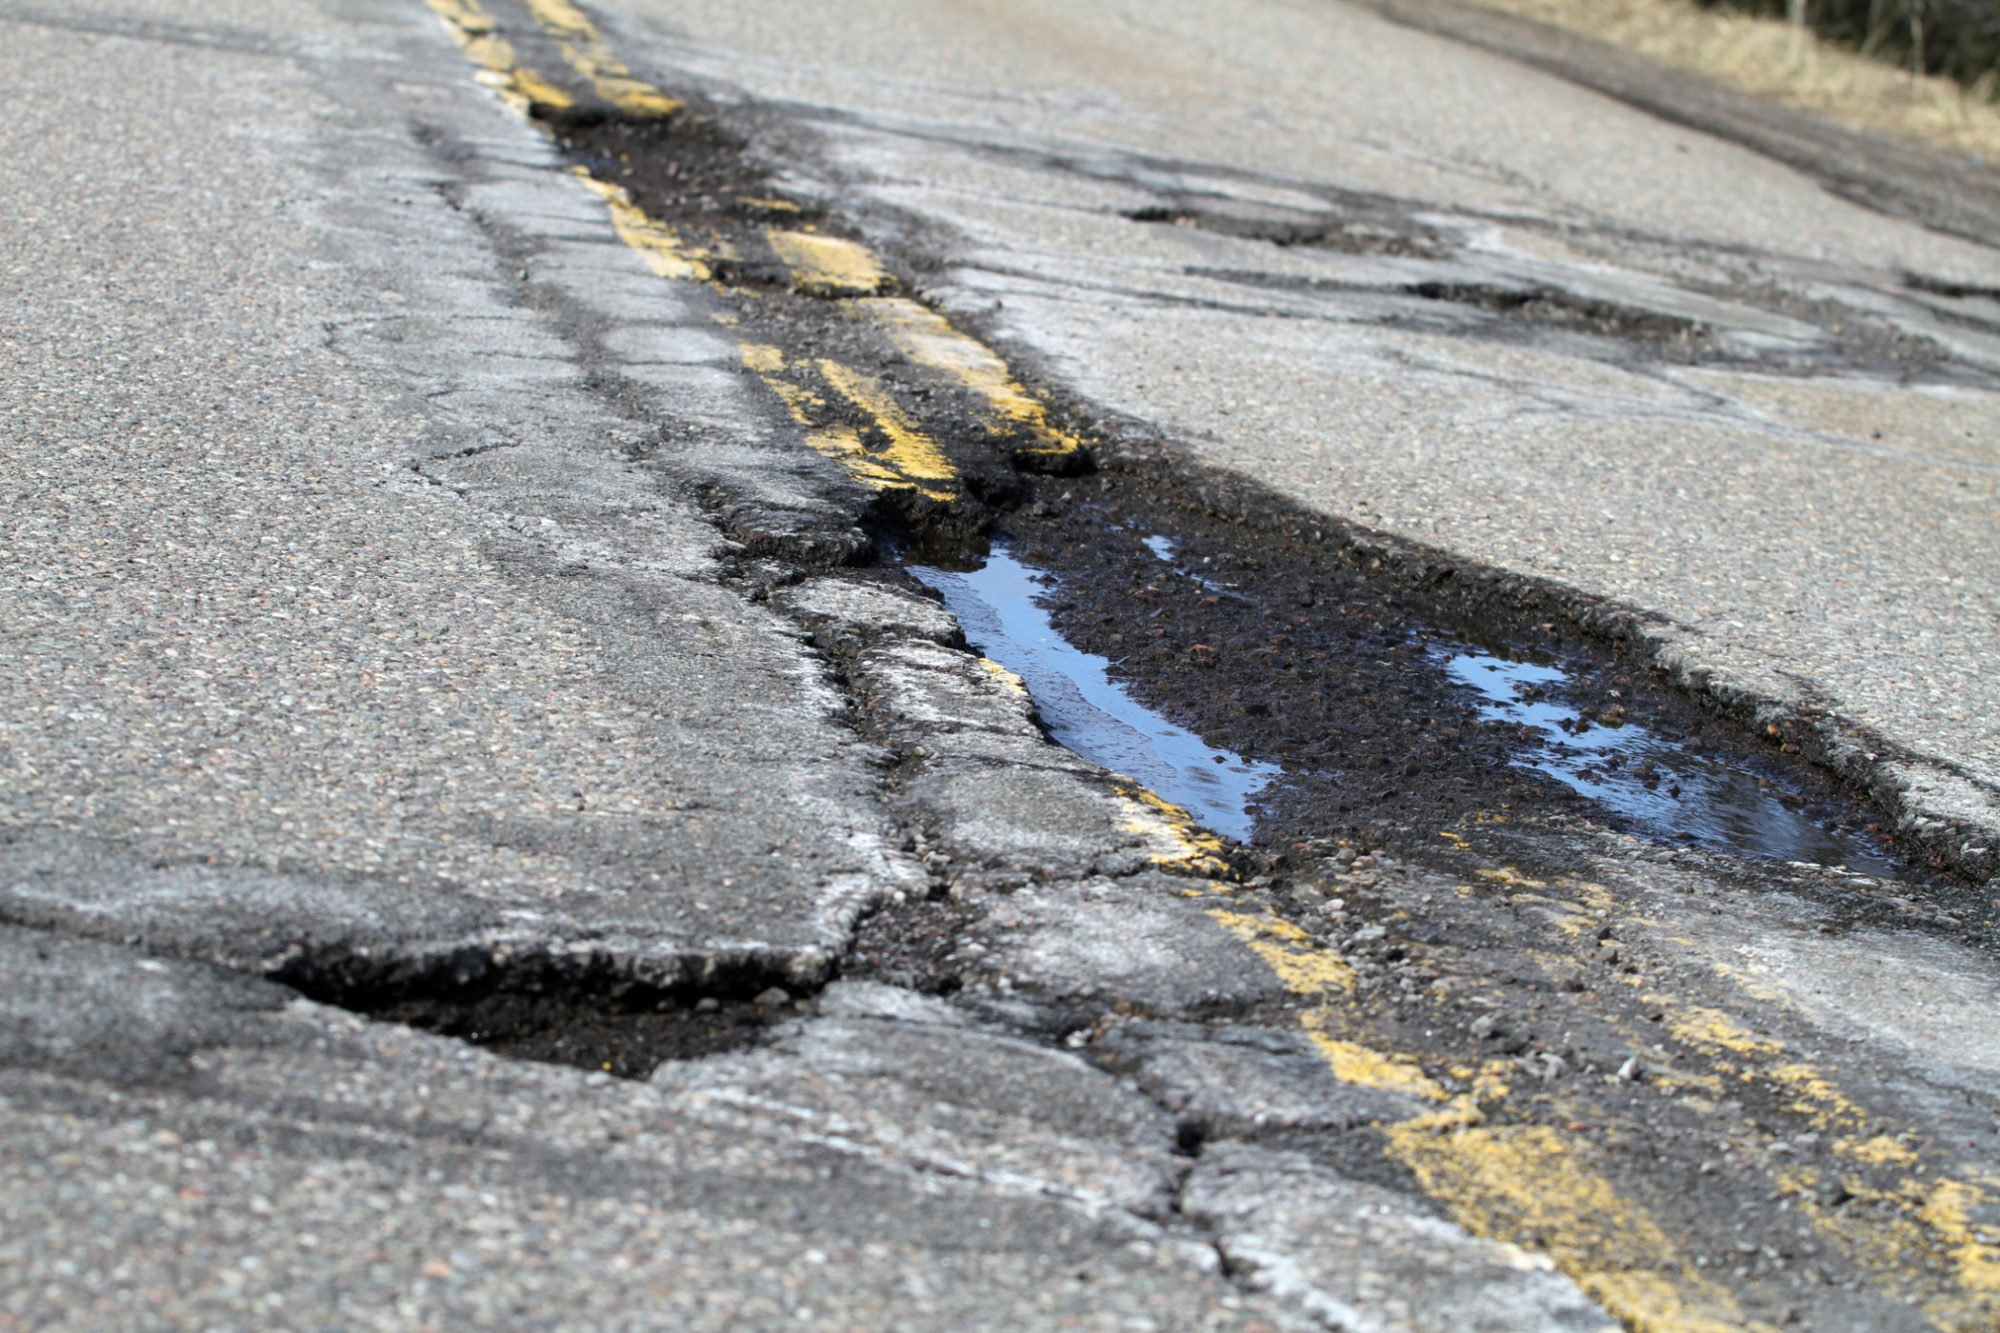 FITSNews – South Carolina's Latest 'Worst Roads' Ranking Highlights Gas Tax Failure